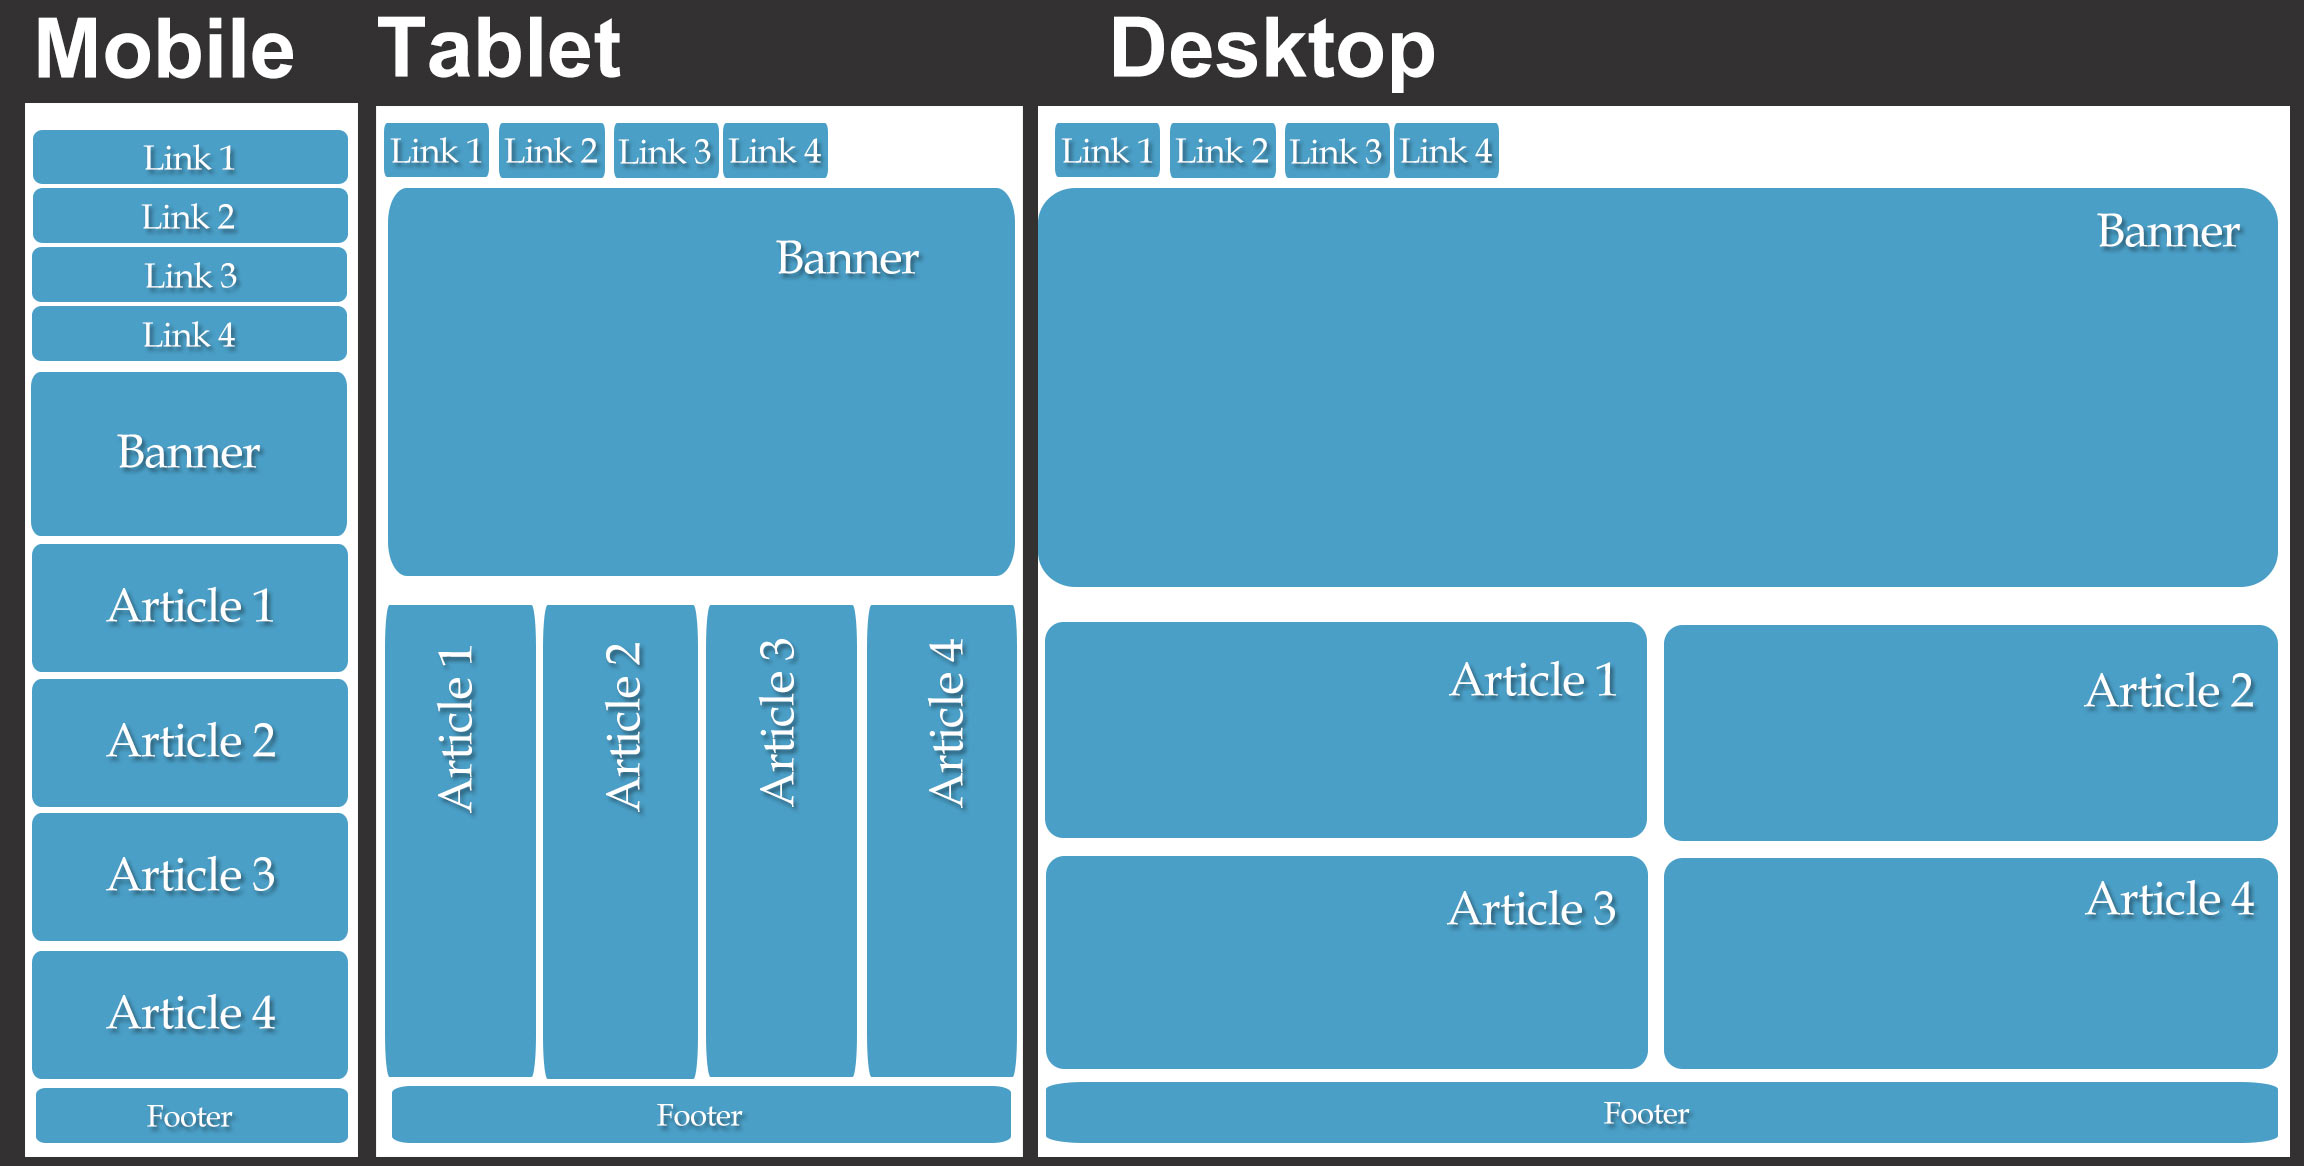 How To Create A Responsive Web Design That Adjusts To Different Screen Sizes